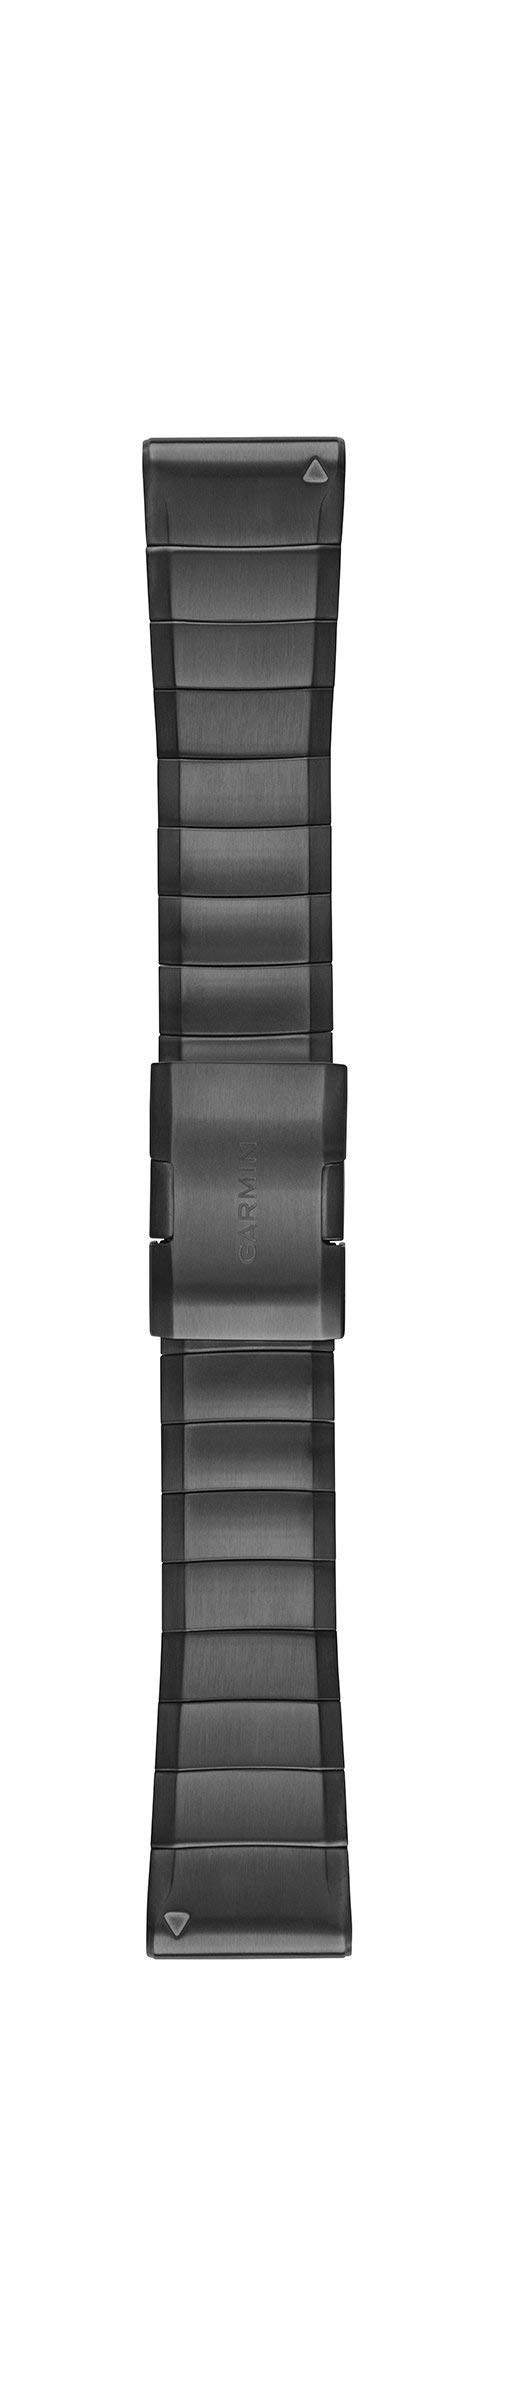 Garmin 010-12741-01 Quickfit 26 Watch Band - Carbon Grey DLC Titanium- Accessory Band for Fenix 5X Plus/Fenix 5X by Garmin